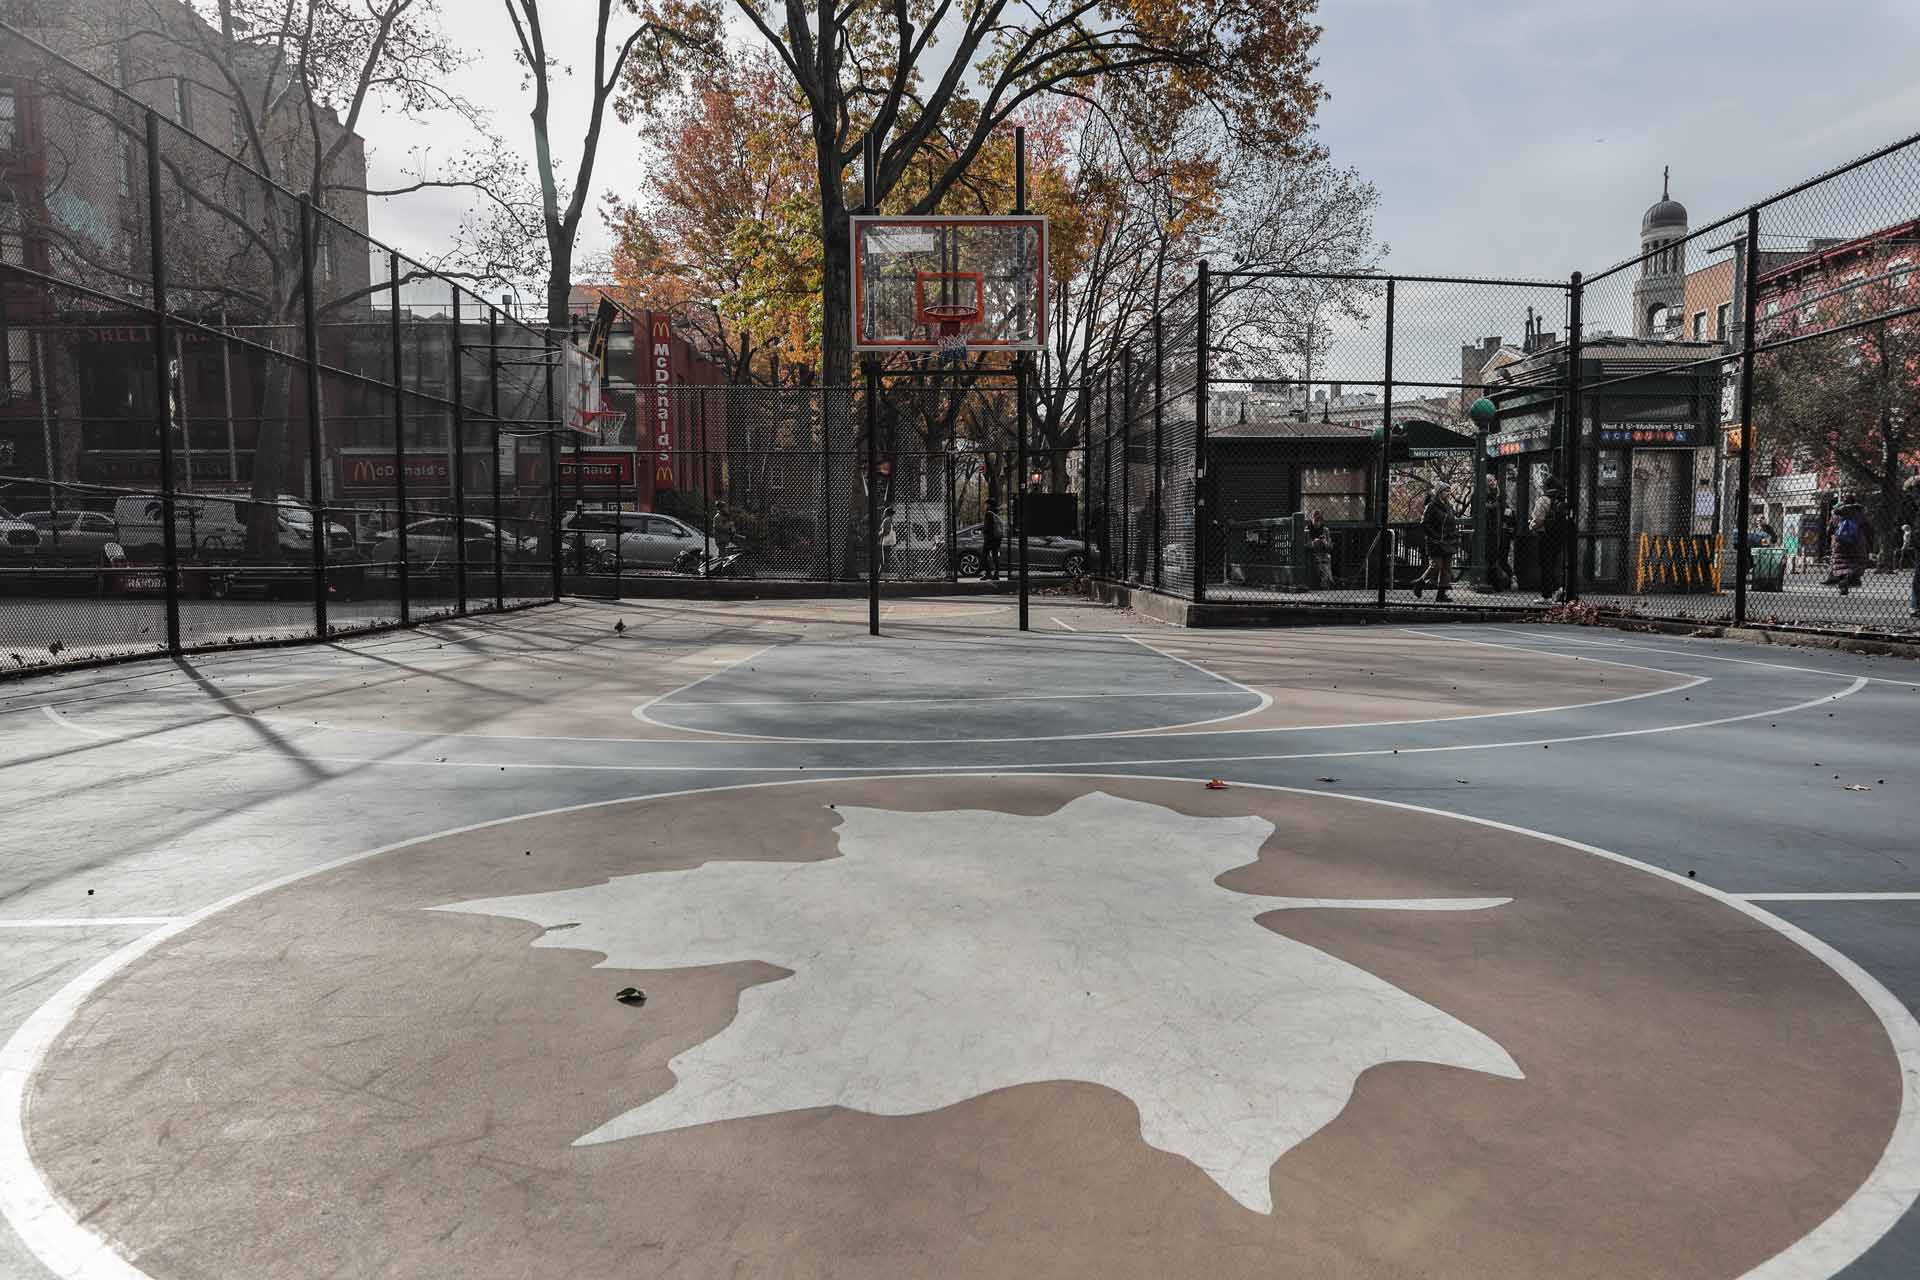 west-4th-street-courts-greenwich-play-ground-street-basket